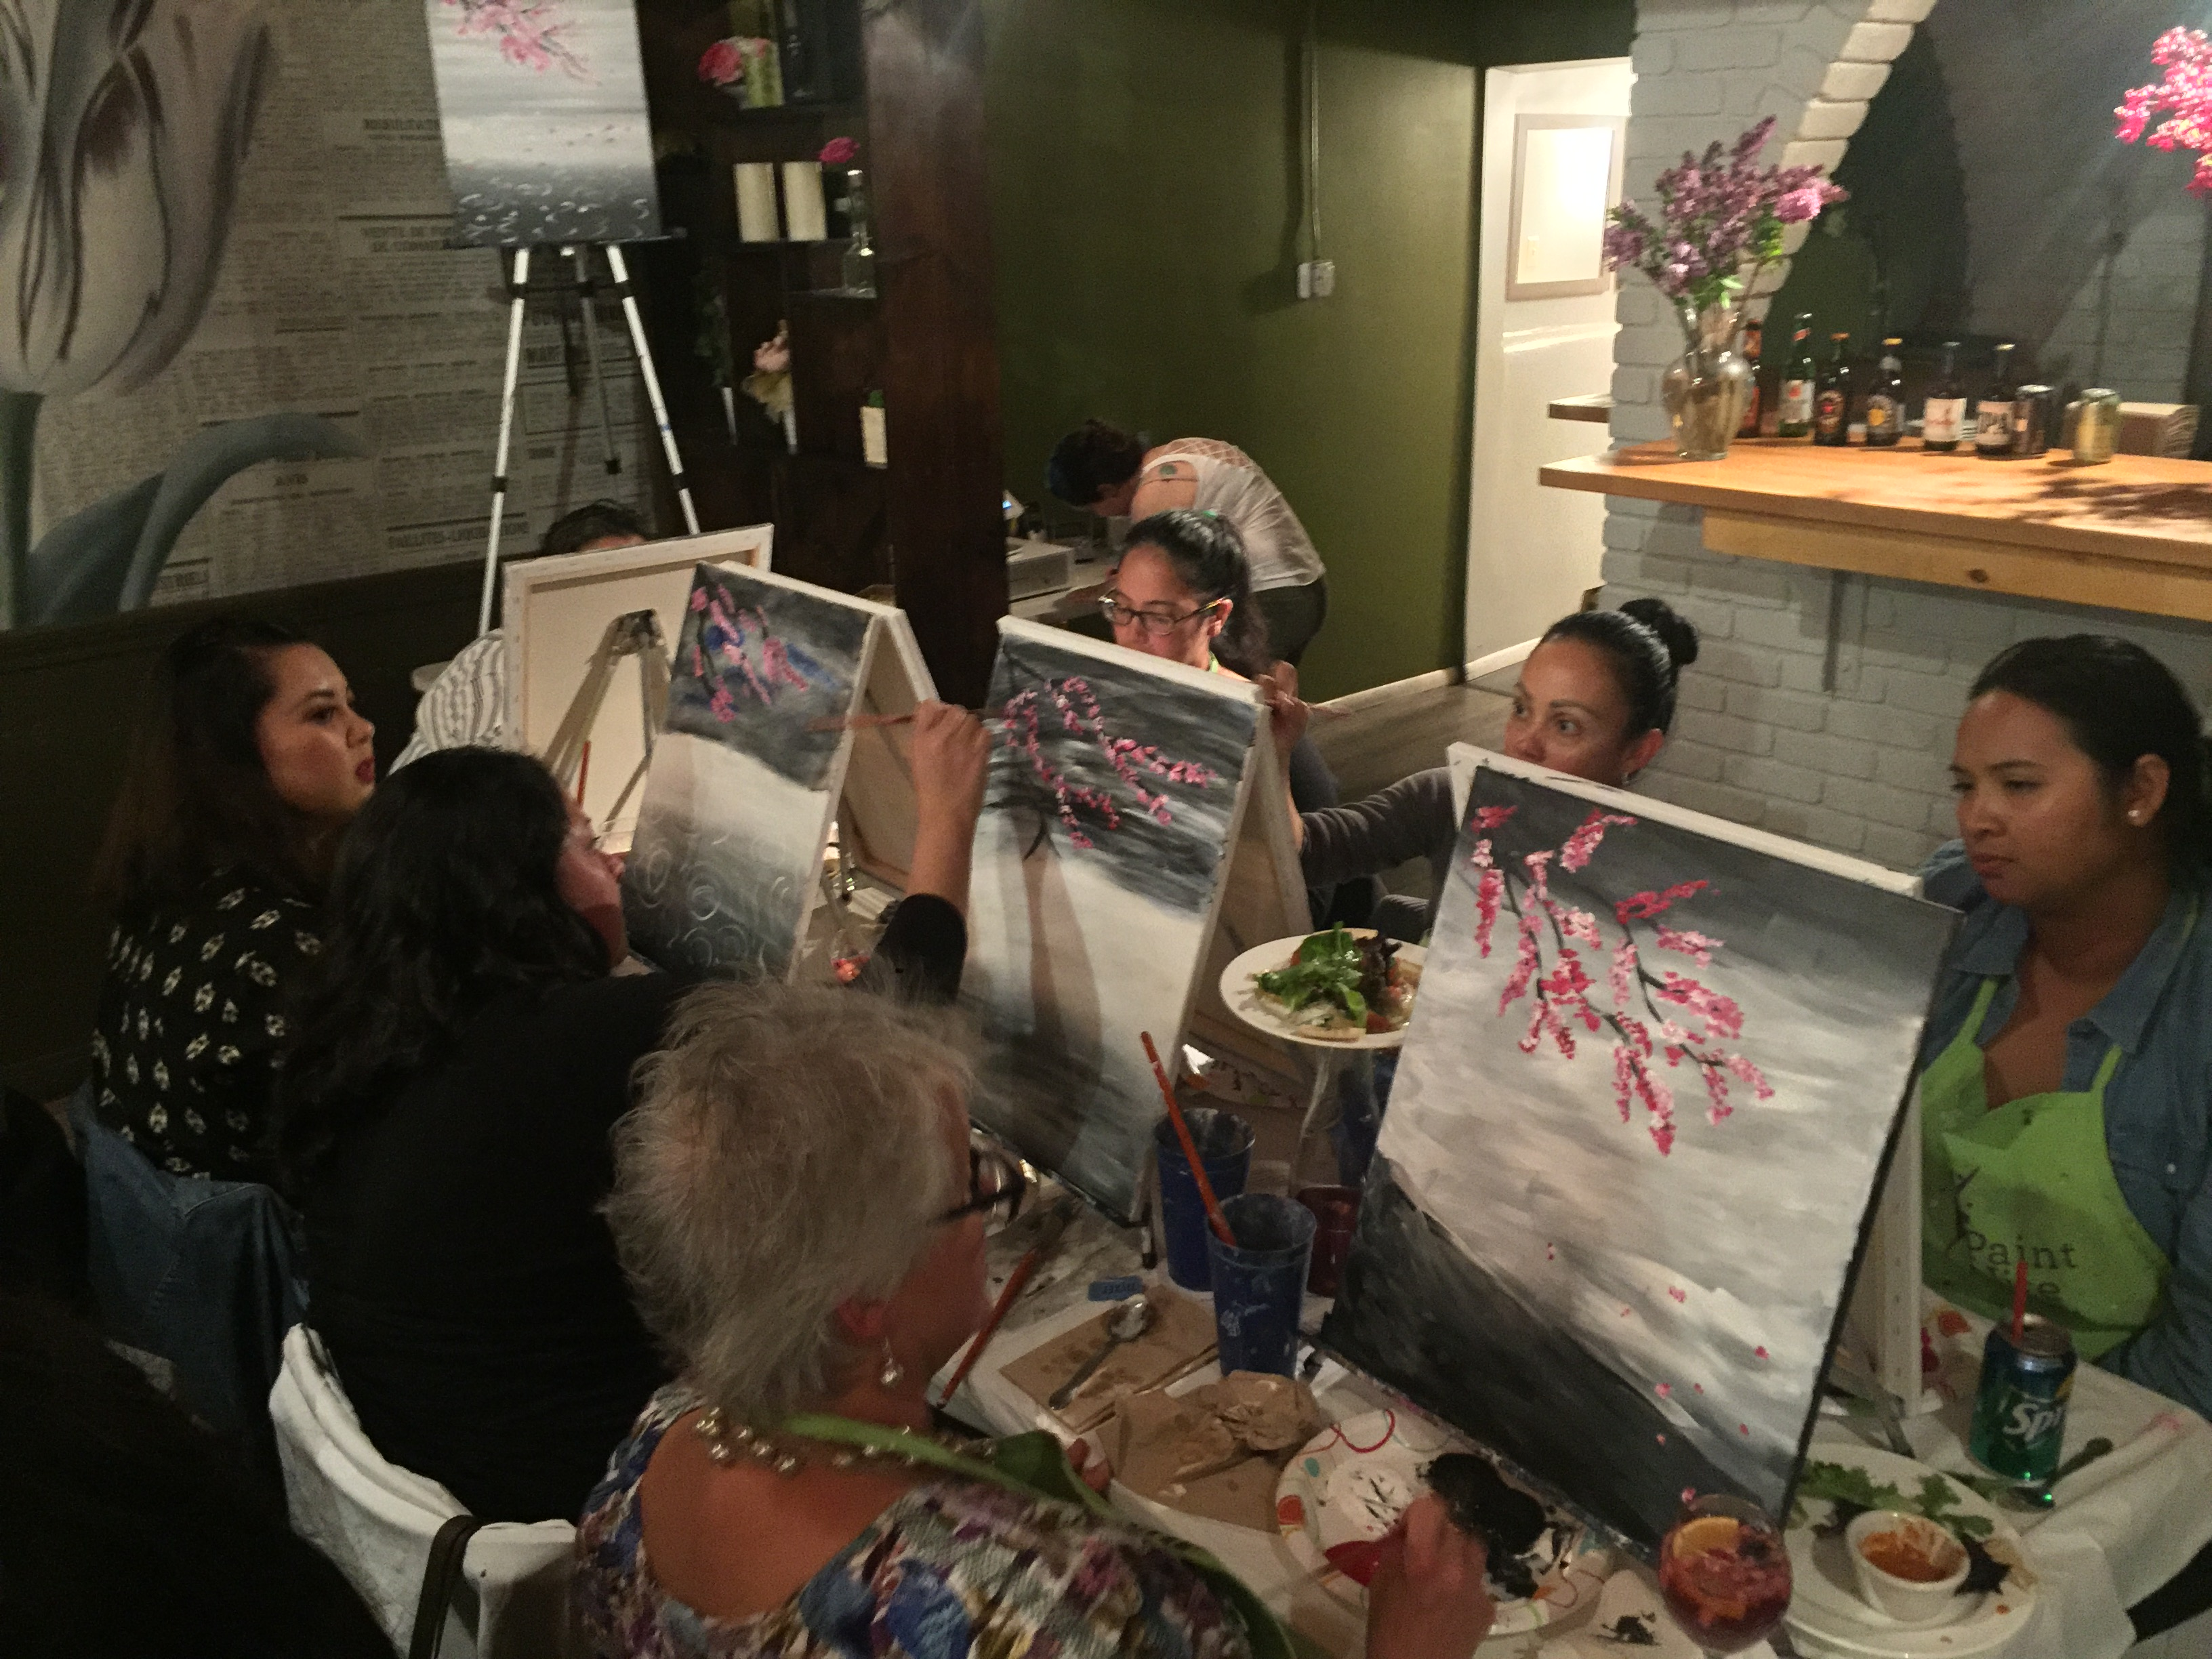 Participants at Paint Nite enjoyed a meal while painting at LaLe restaurant in San Francisco on April 12, 2017. Photo credit: Mintzhet Tan